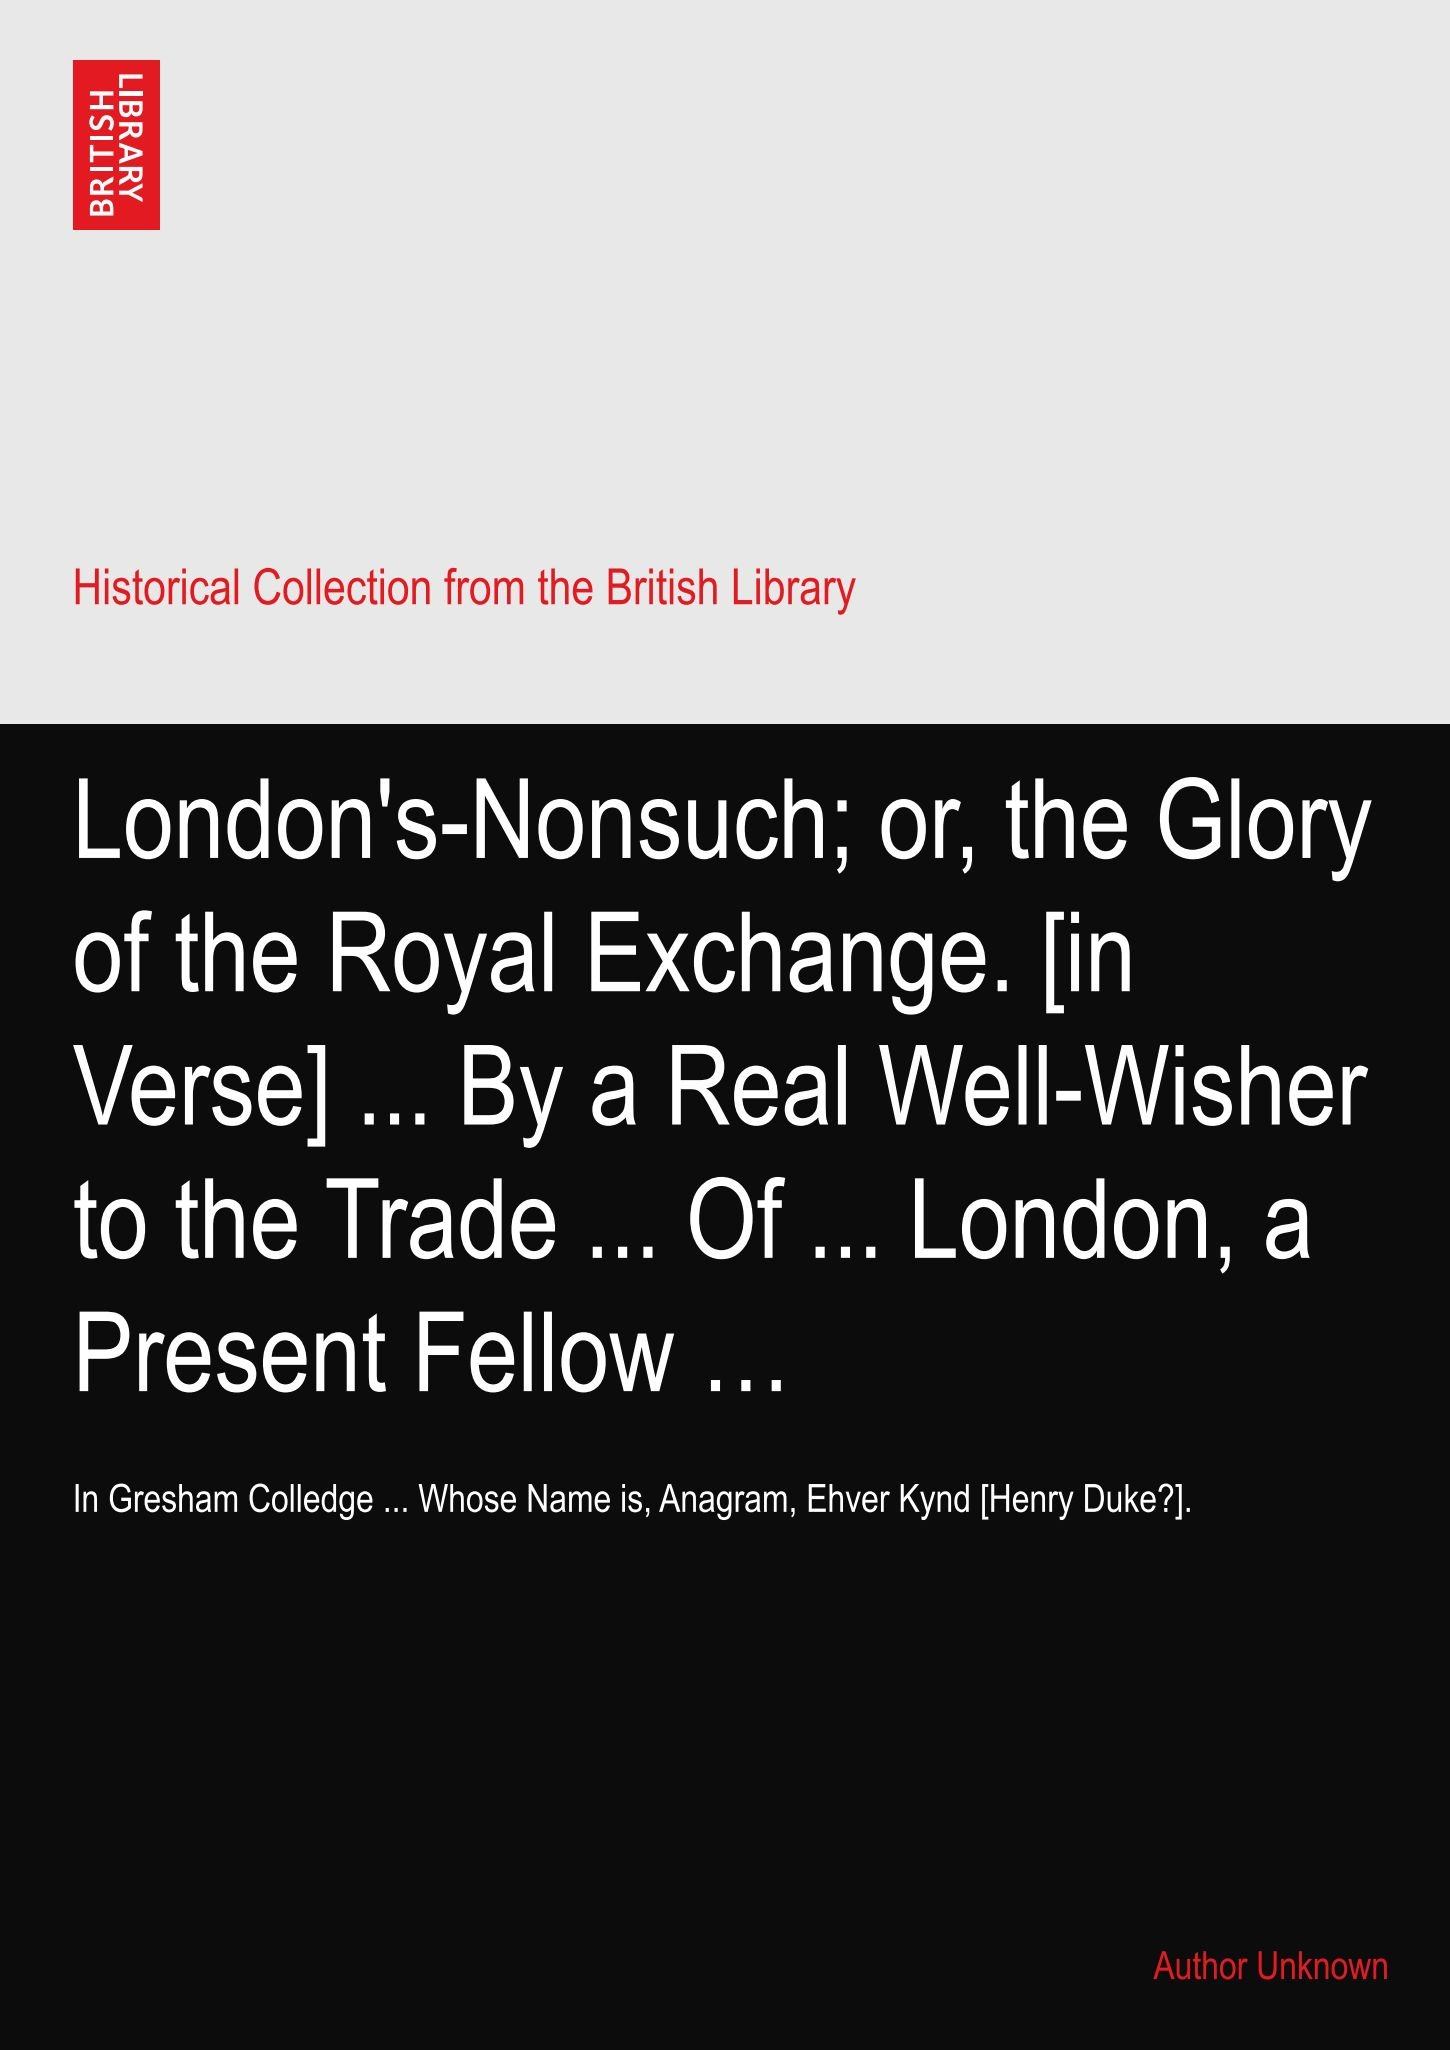 Download London's-Nonsuch; or, the Glory of the Royal Exchange. [in Verse] ... By a Real Well-Wisher to the Trade ... Of ... London, a Present Fellow …: In ... Name is, Anagram, Ehver Kynd [Henry Duke?]. pdf epub